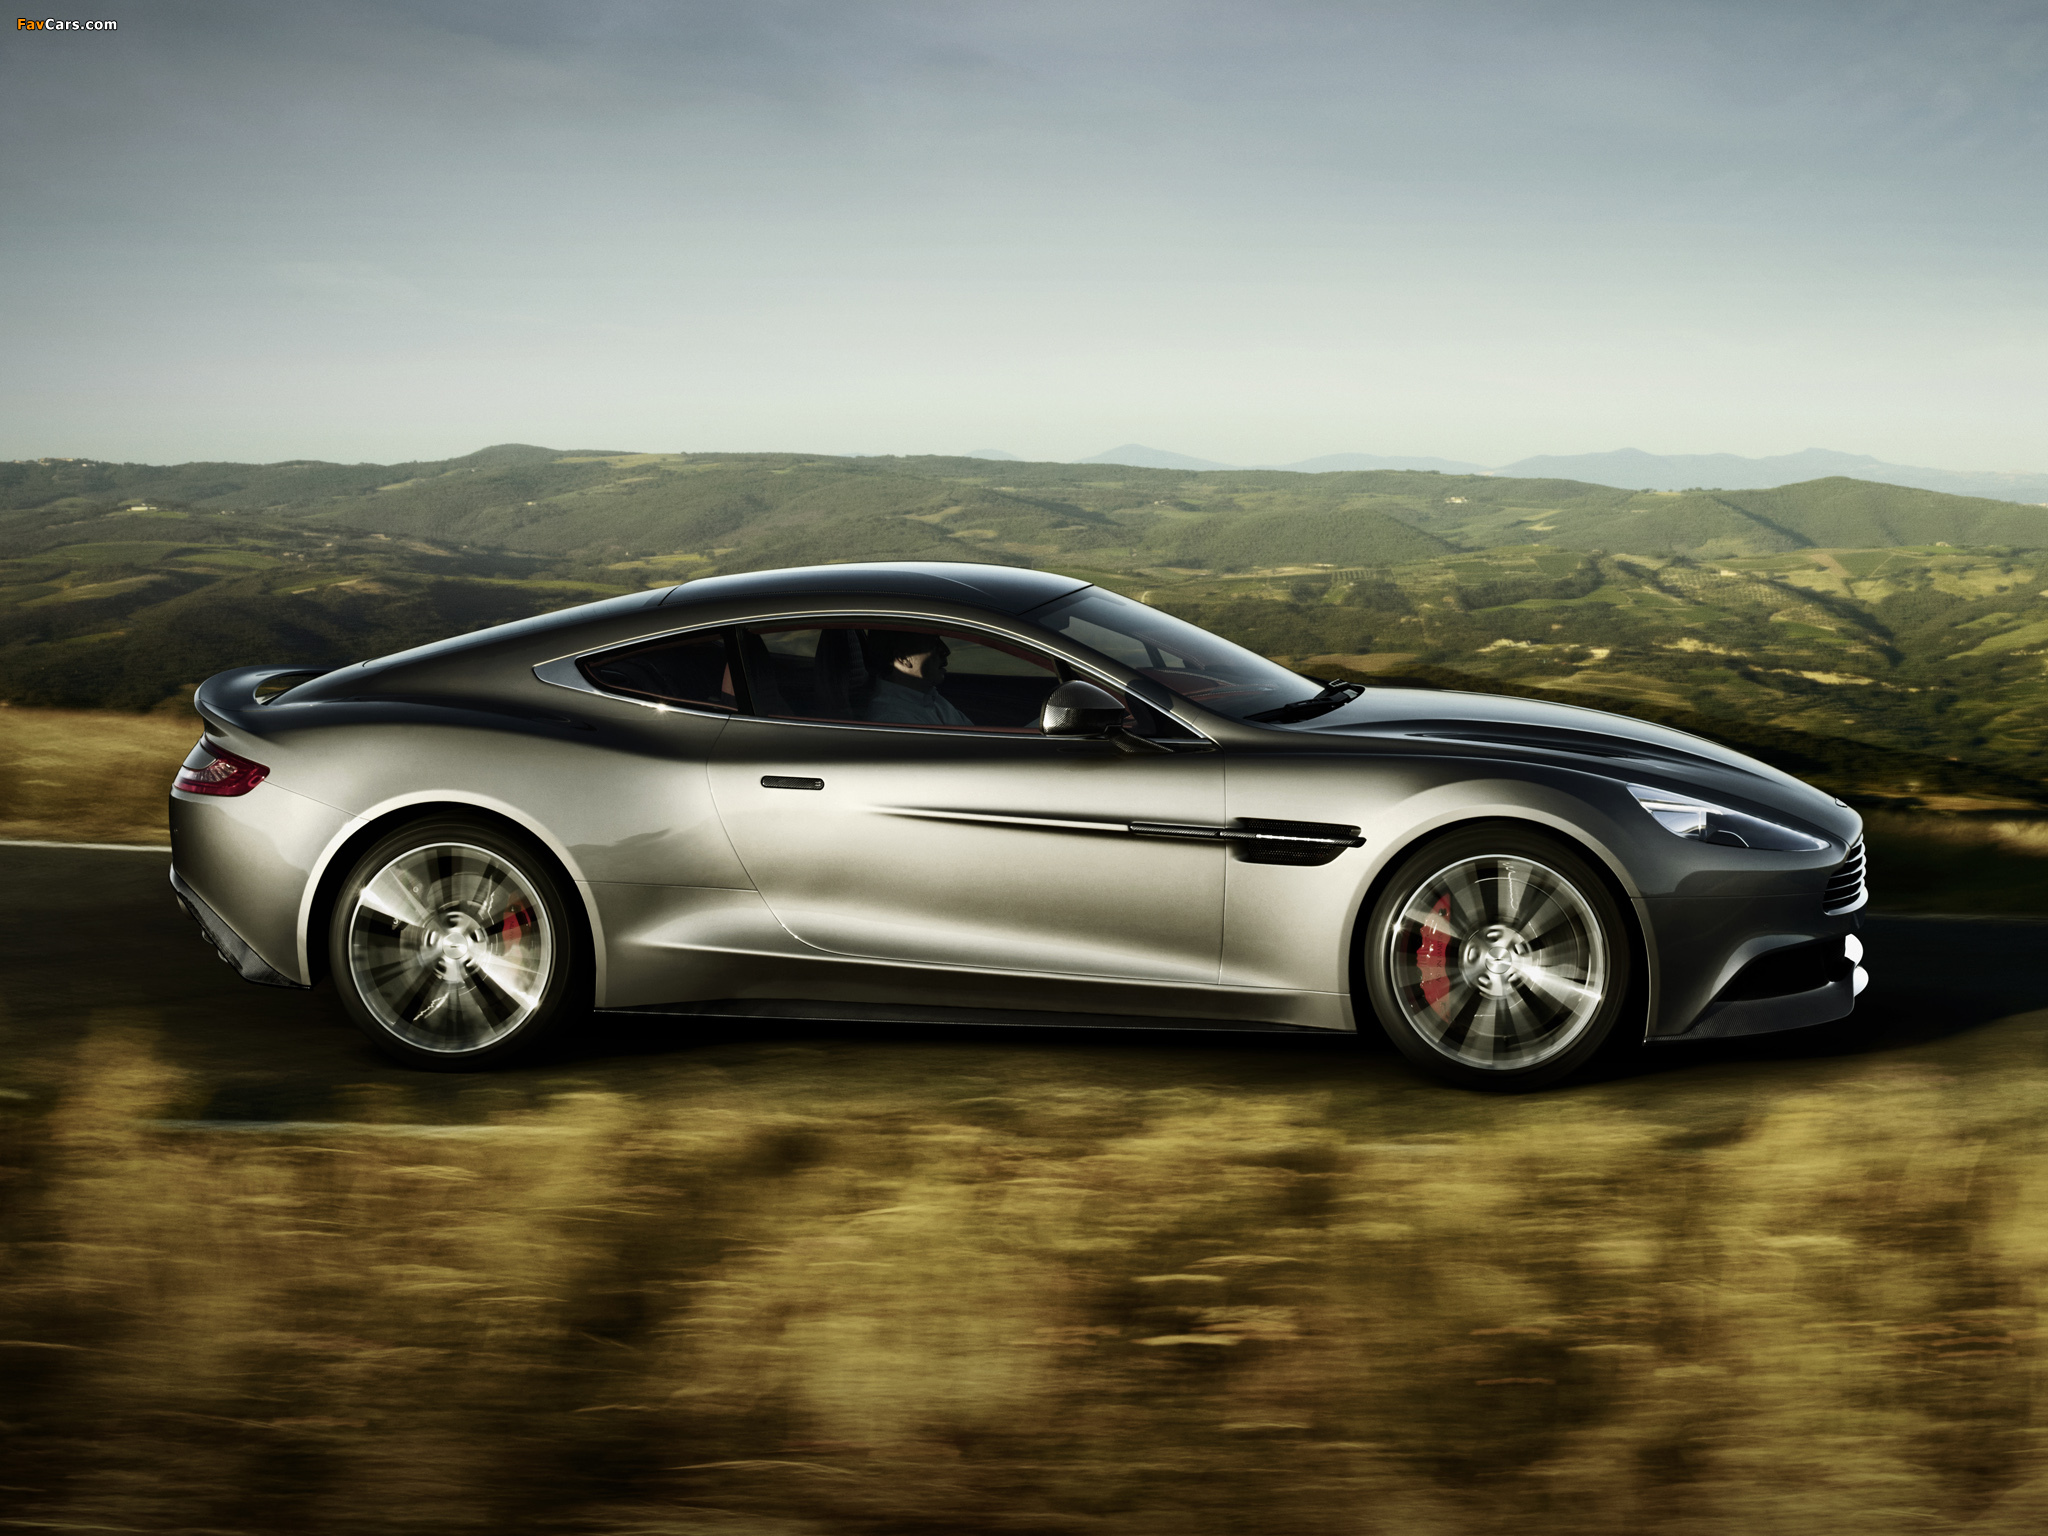 Download Aston Martin Vanquish Wallpaper Download Aston Martin 2048x1536